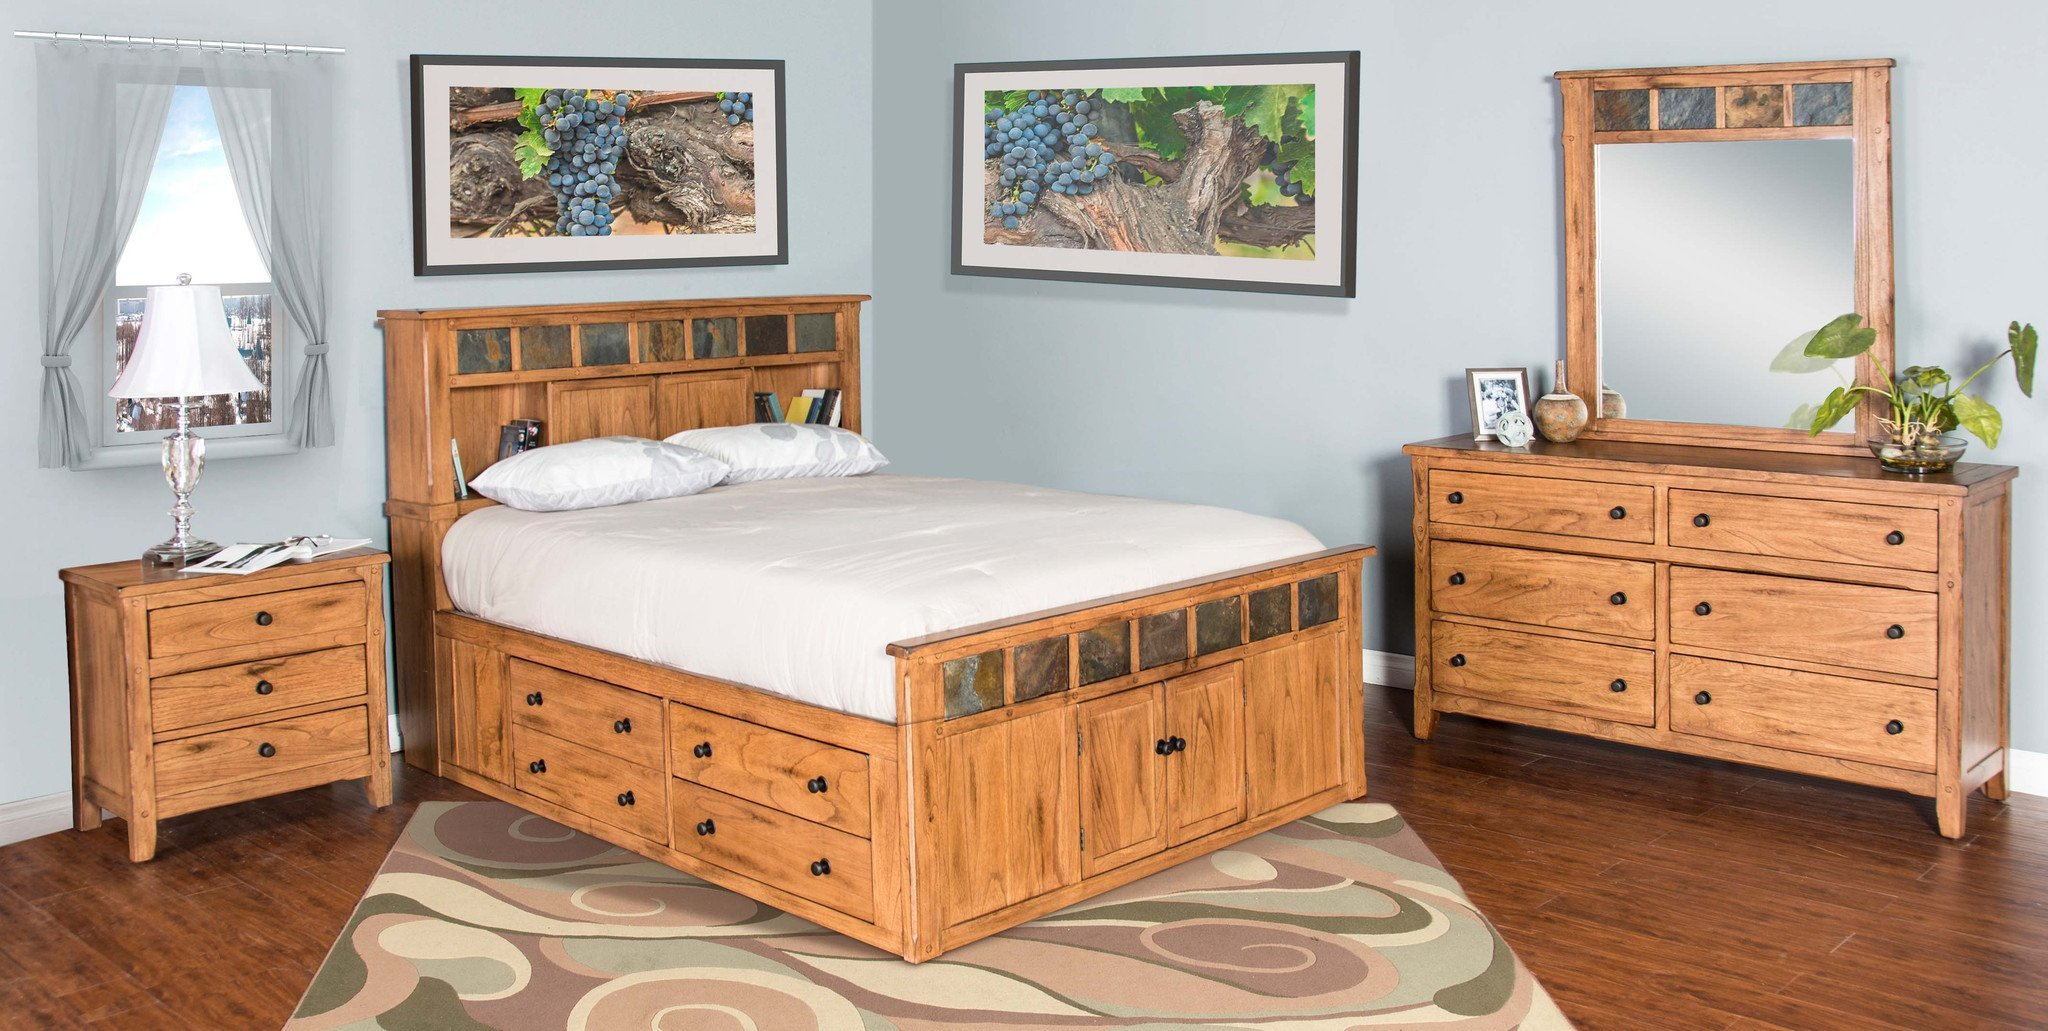 King Size Bedroom Benches Lovely Sedona Rustic Petite Storage Bedroom Suite E King Size